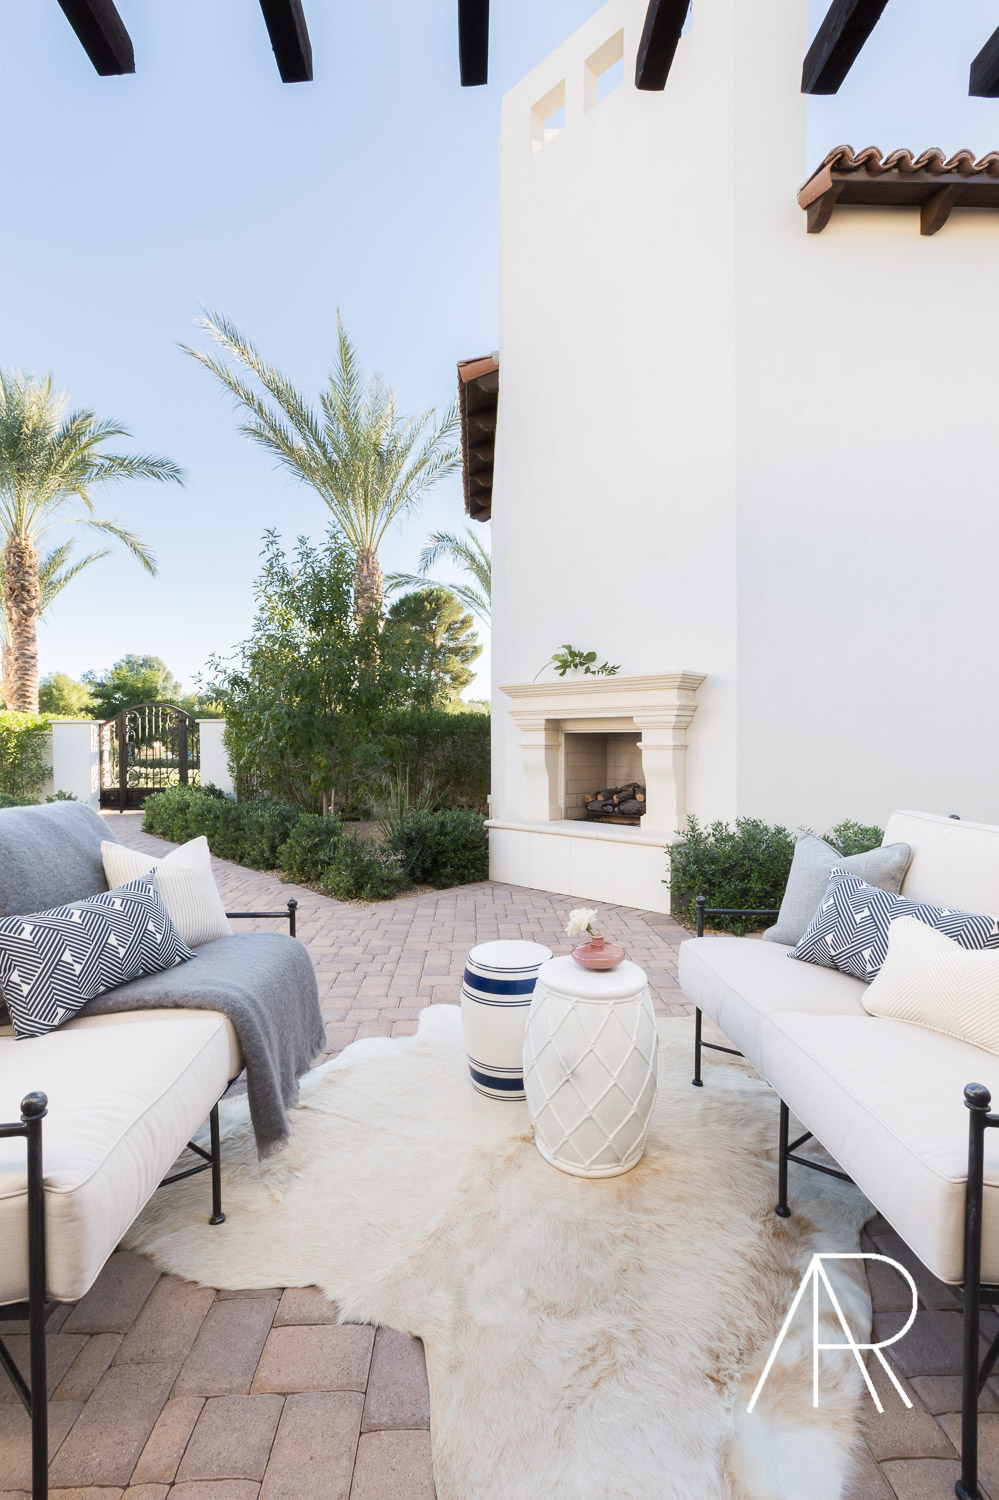 ©AlyssaRosenheck Scottsdale AZ Courtyard with Mydomaine and Bria Hammel Interiors